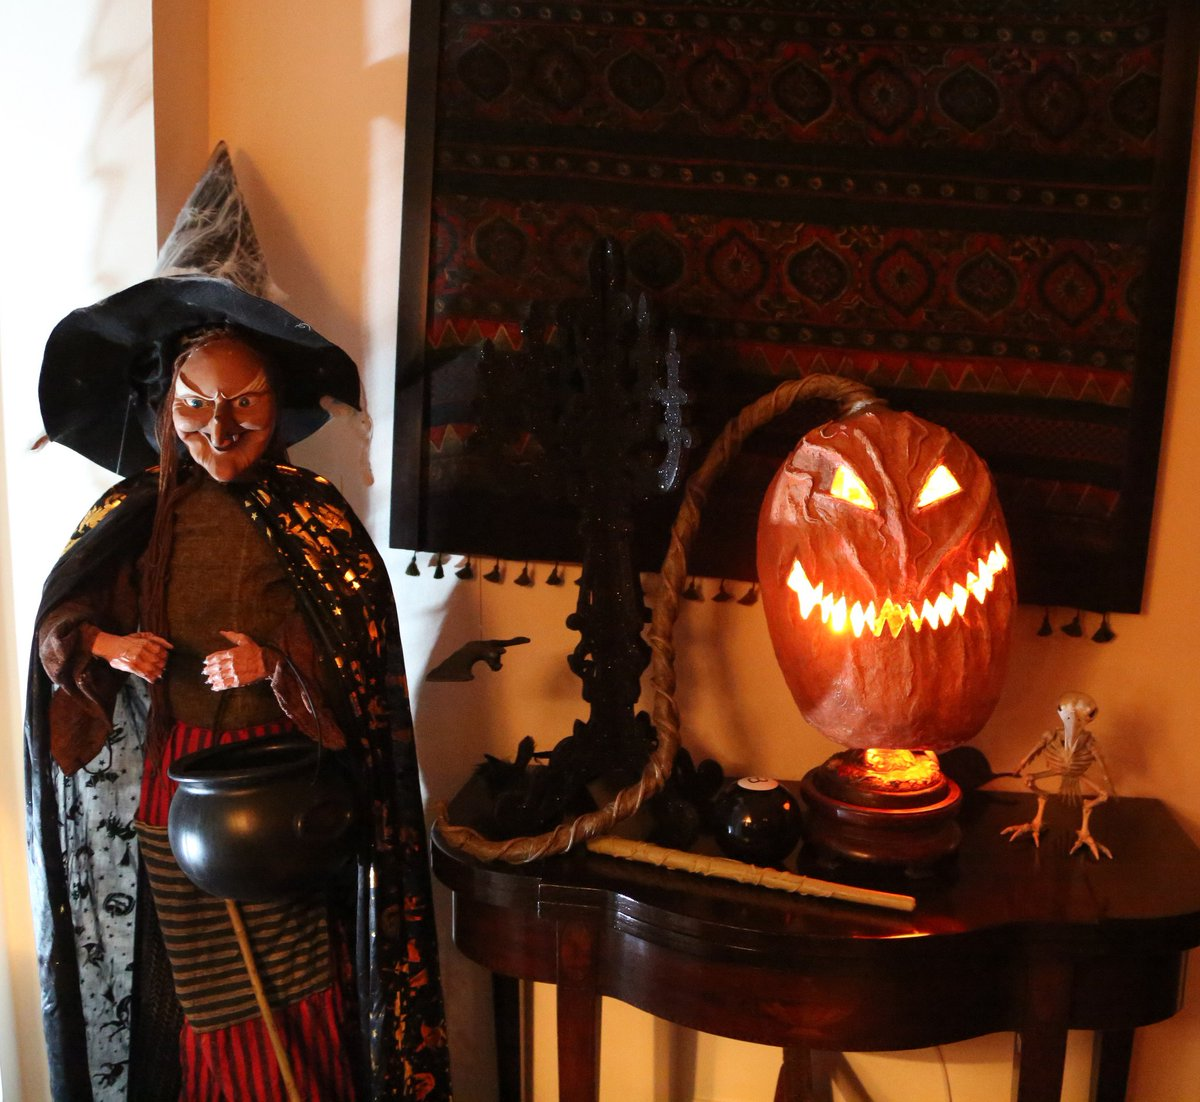 The holiday is intended to remember the dead saints and other souls; U S Embassy India On Twitter Halloween Is Short For Hallows Eve Or Hallows Evening Which Was The Evening Before All Hallows Day On November 1 Halloween2018 Https T Co Ype7d6afd4